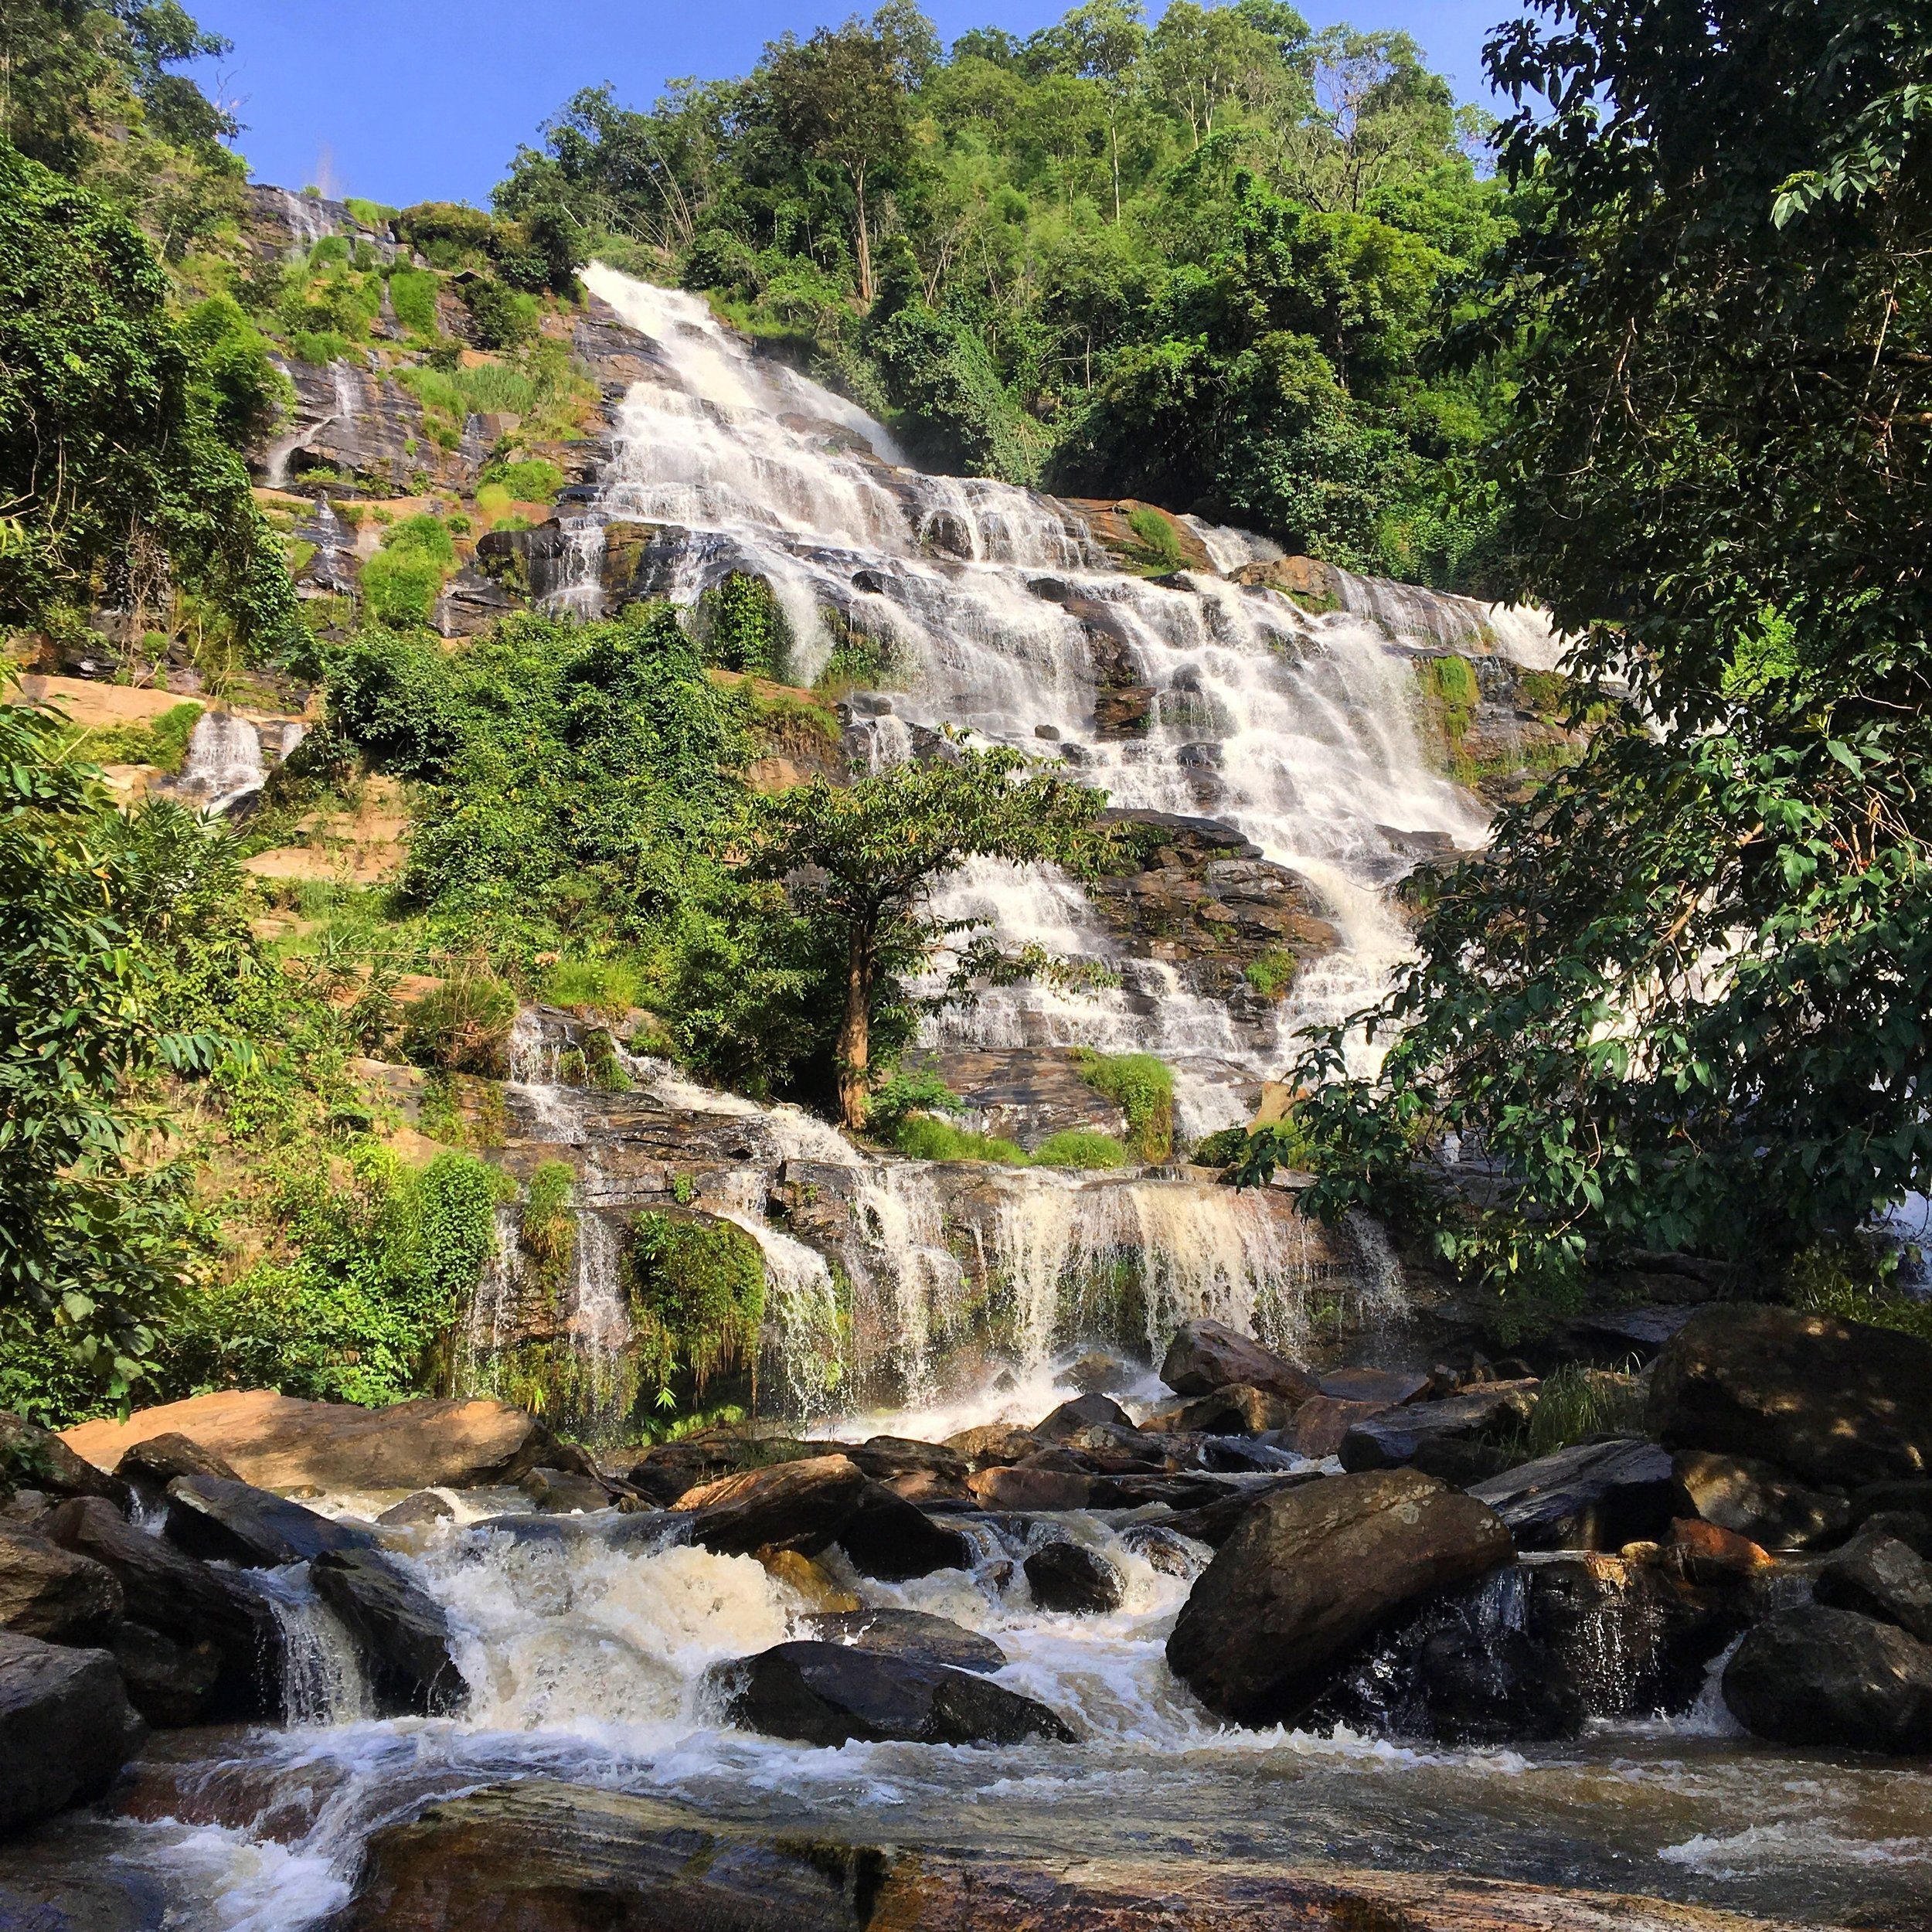 Another Doi Inthanon National Park waterfall